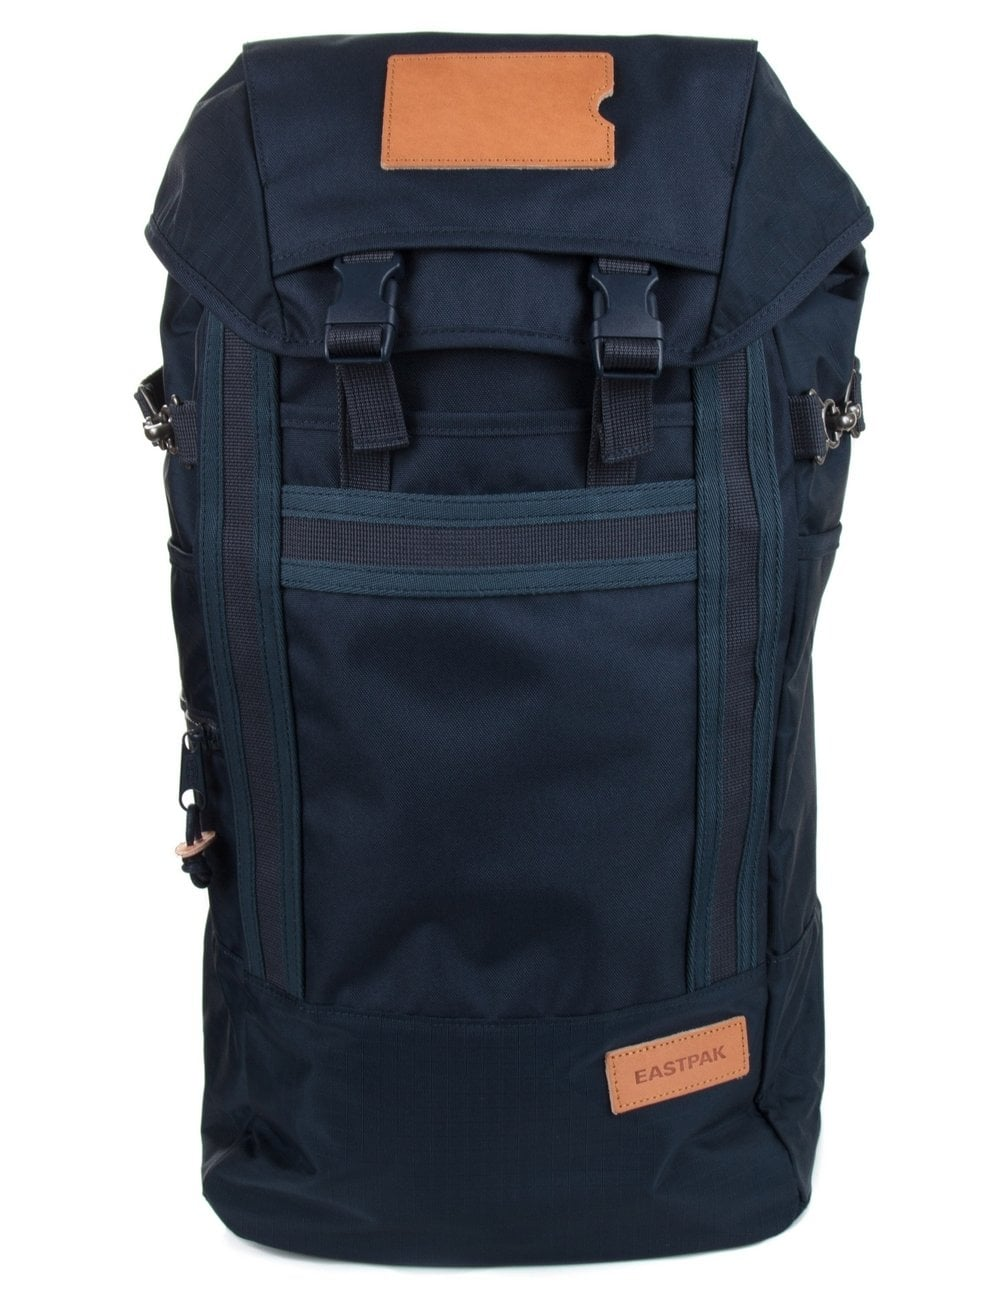 Eastpak Bust Backpack - Merge Navy - Accessories from Fat Buddha ... 237012641e